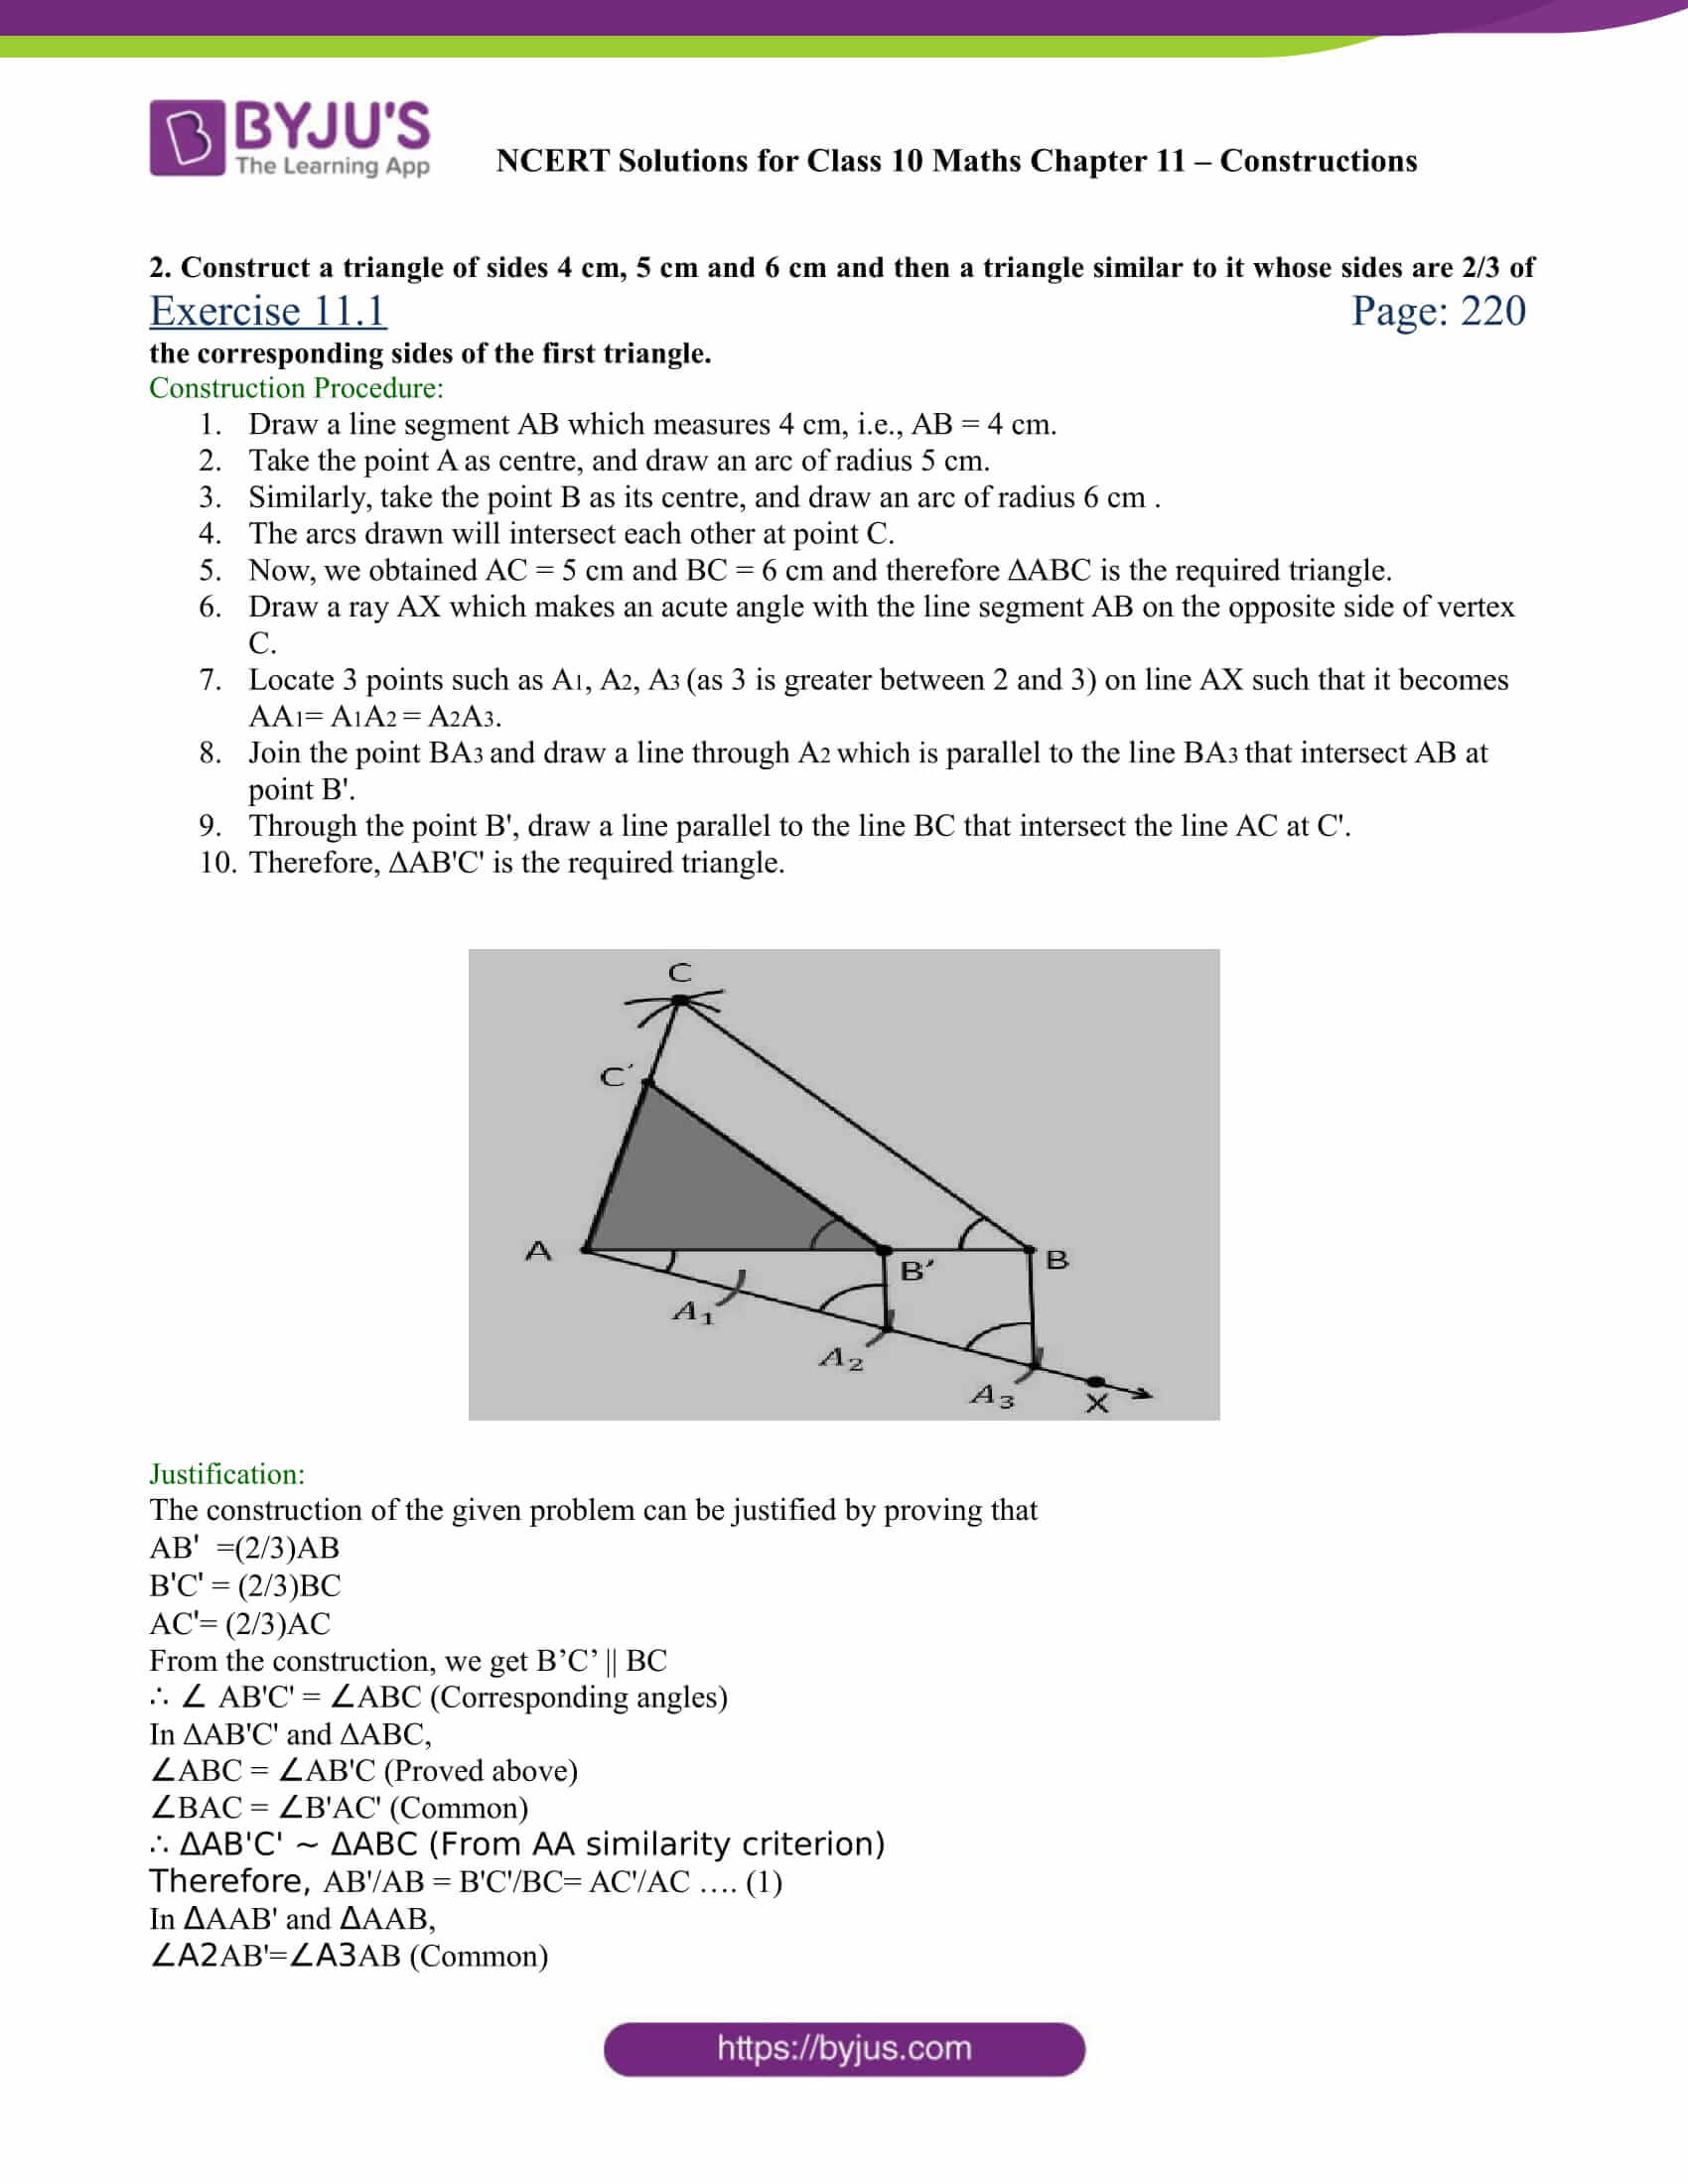 NCERT Solutions for class 10 chapter 11 Constructions Part 2